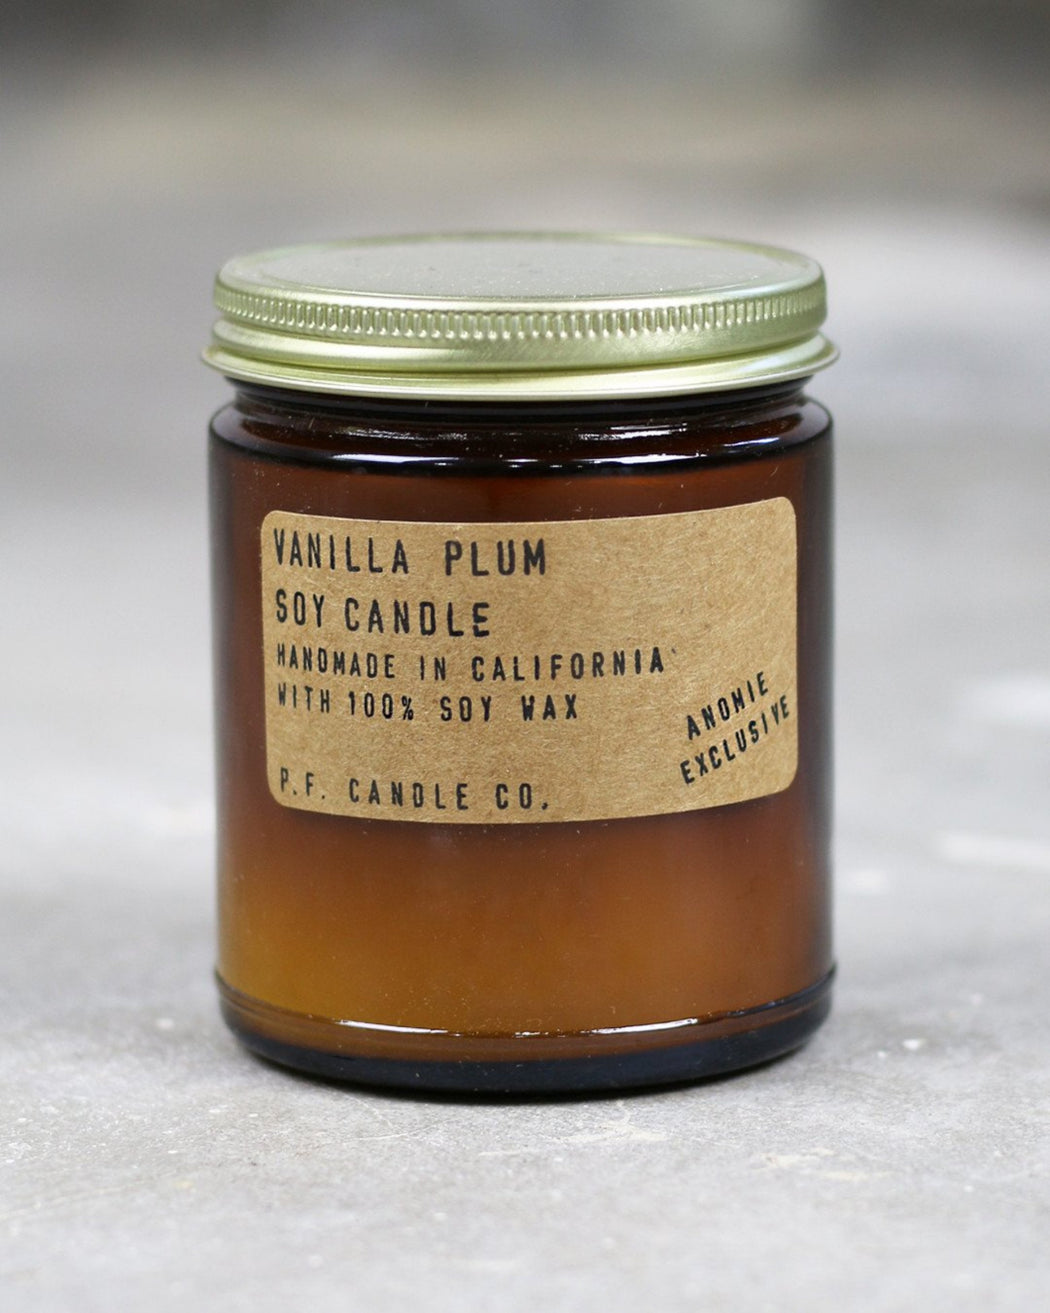 P.F. Candle Co. x ANOMIE:Vanilla Plum – Candle,ANOMIE